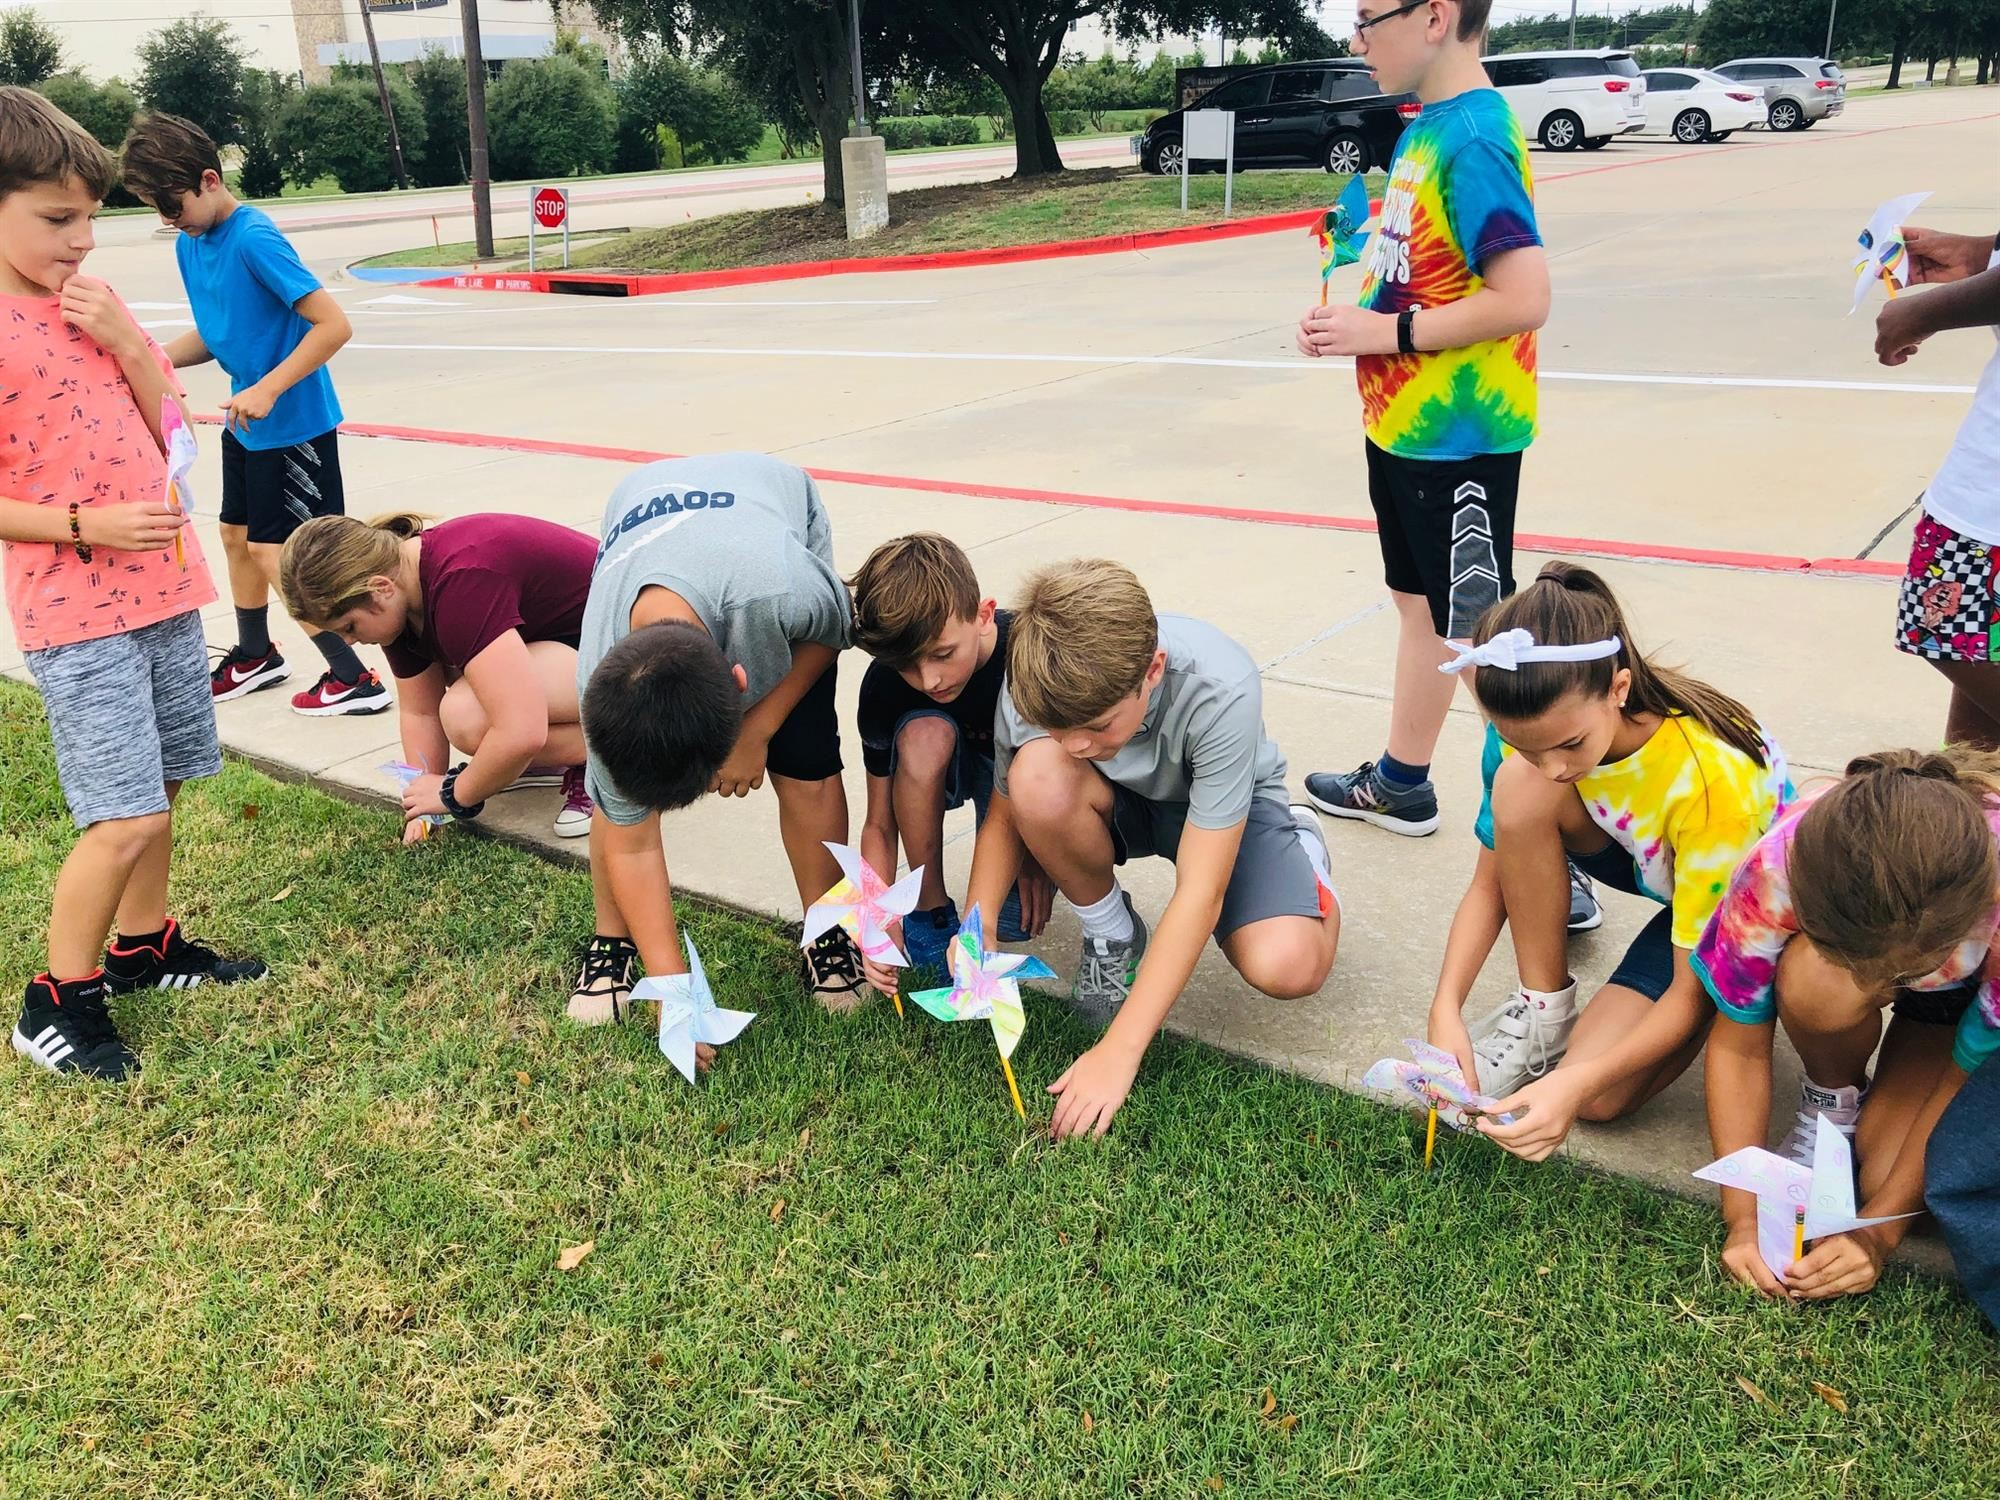 Bluebonnet students place their pinwheels in the grass outside school for world peace. 2019